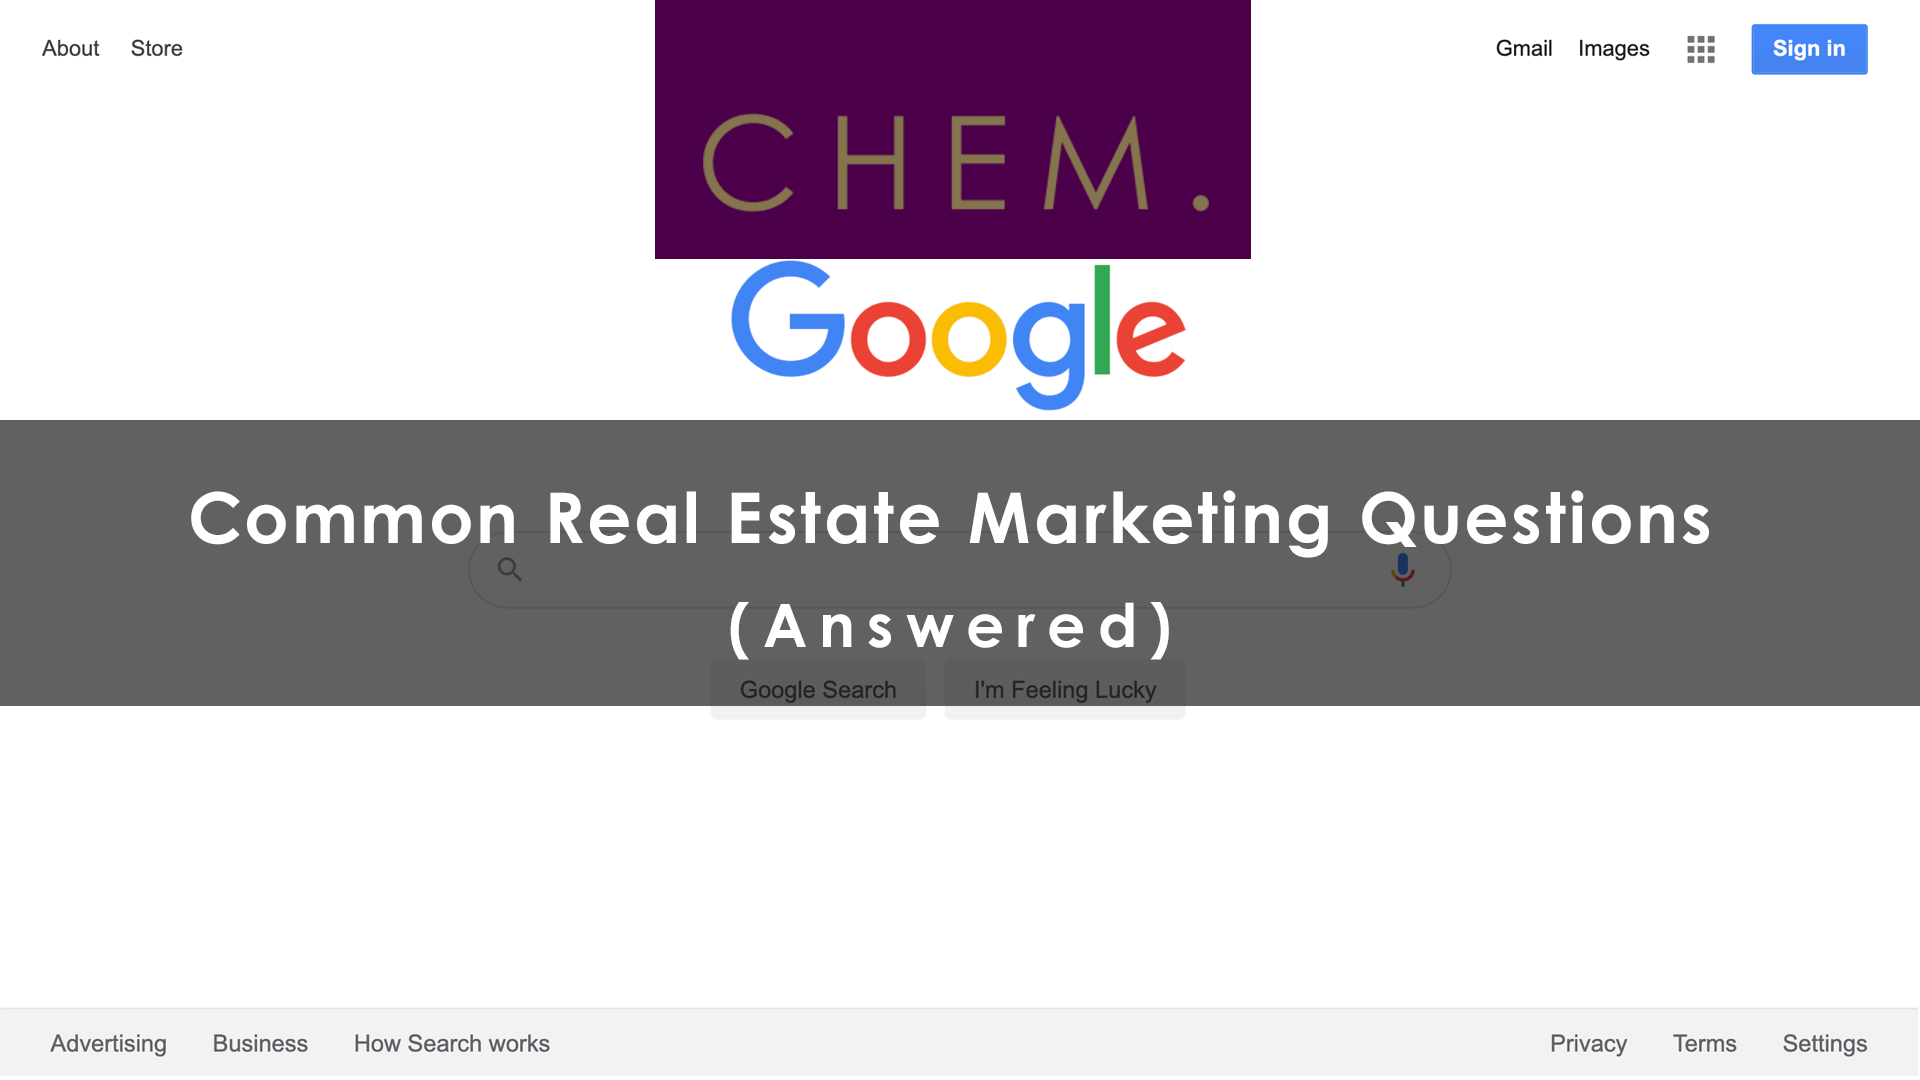 Common Real Estate Marketing Questions (answered)